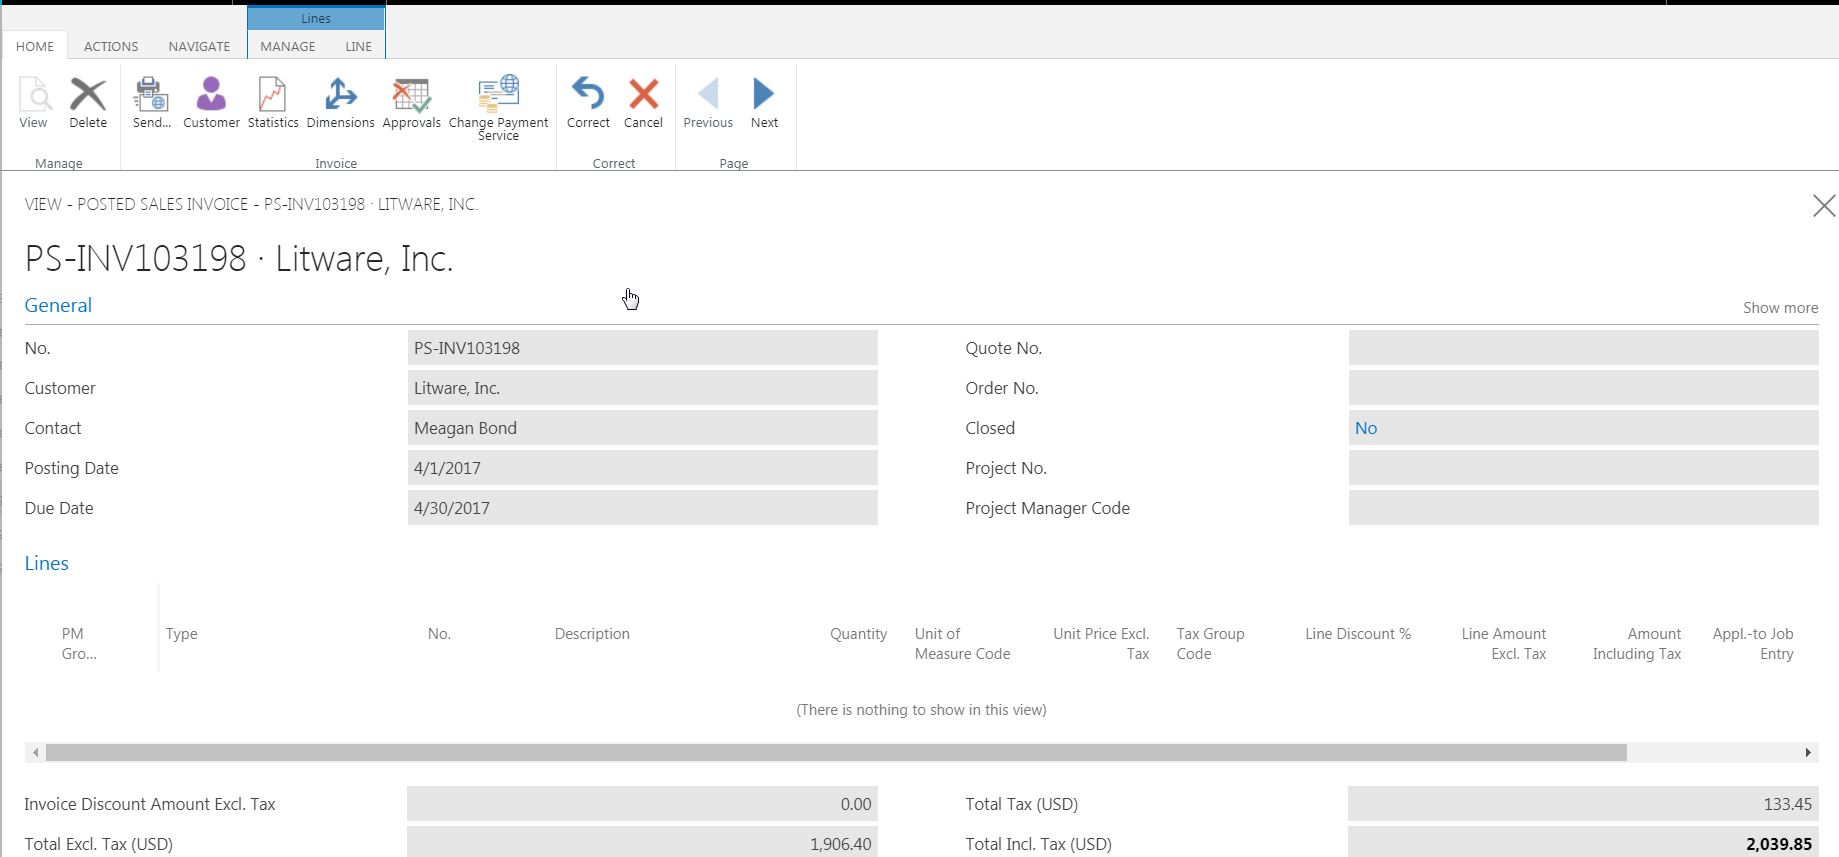 Posted Sales Invoice lines missing on posted invoices